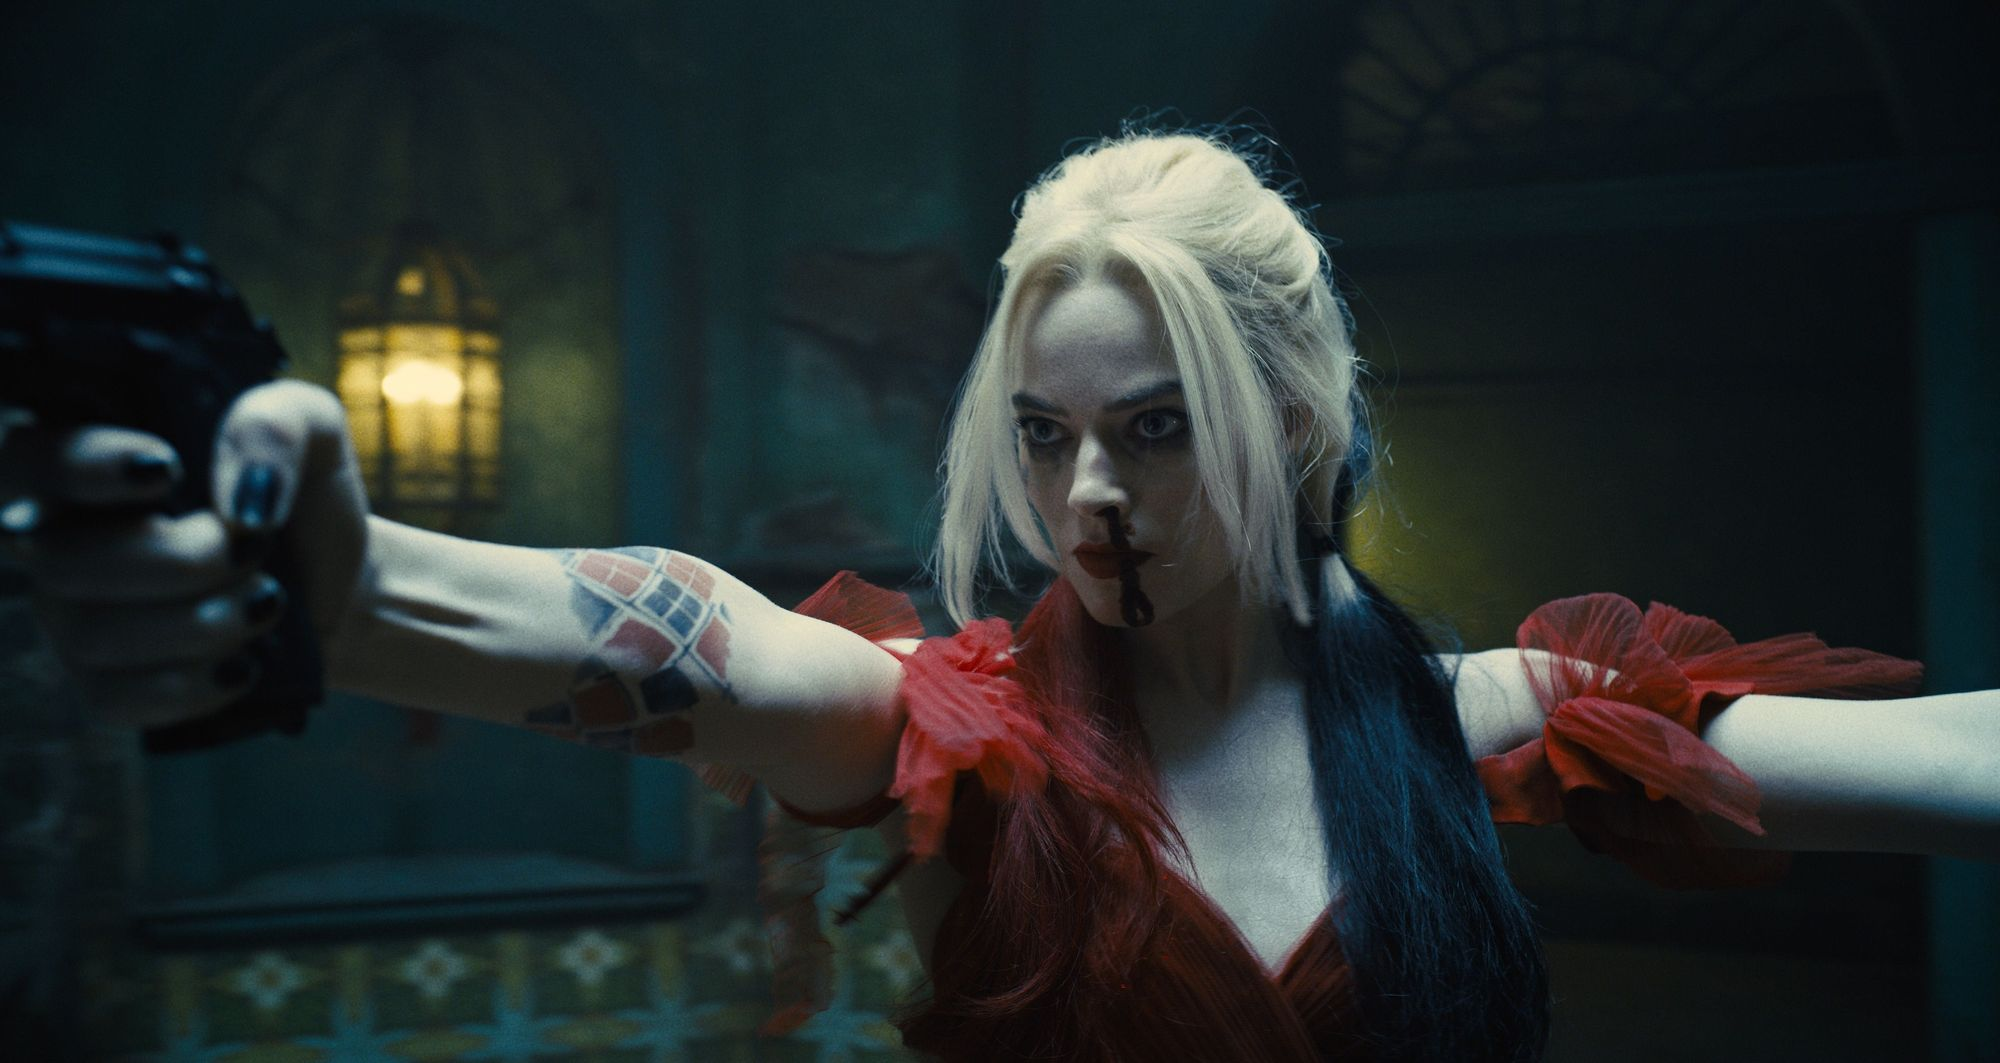 Harley Quinn, the feminist icon of superheroes under examination